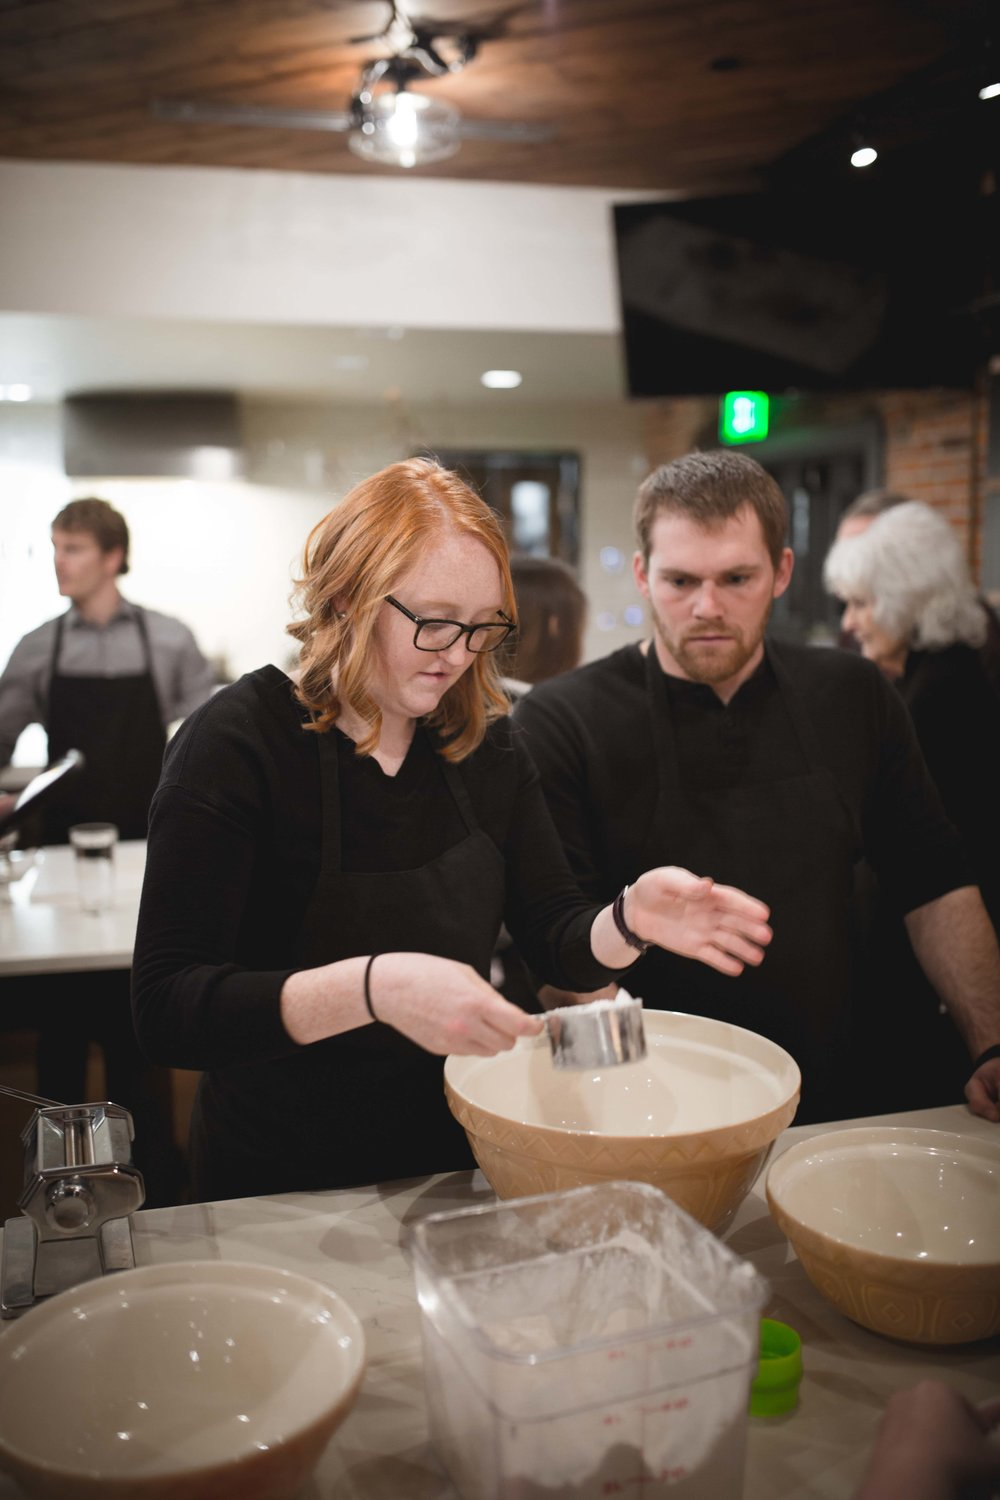 GingerandBaker-JuliyJuan-CookingClass-Feb28-36.jpg